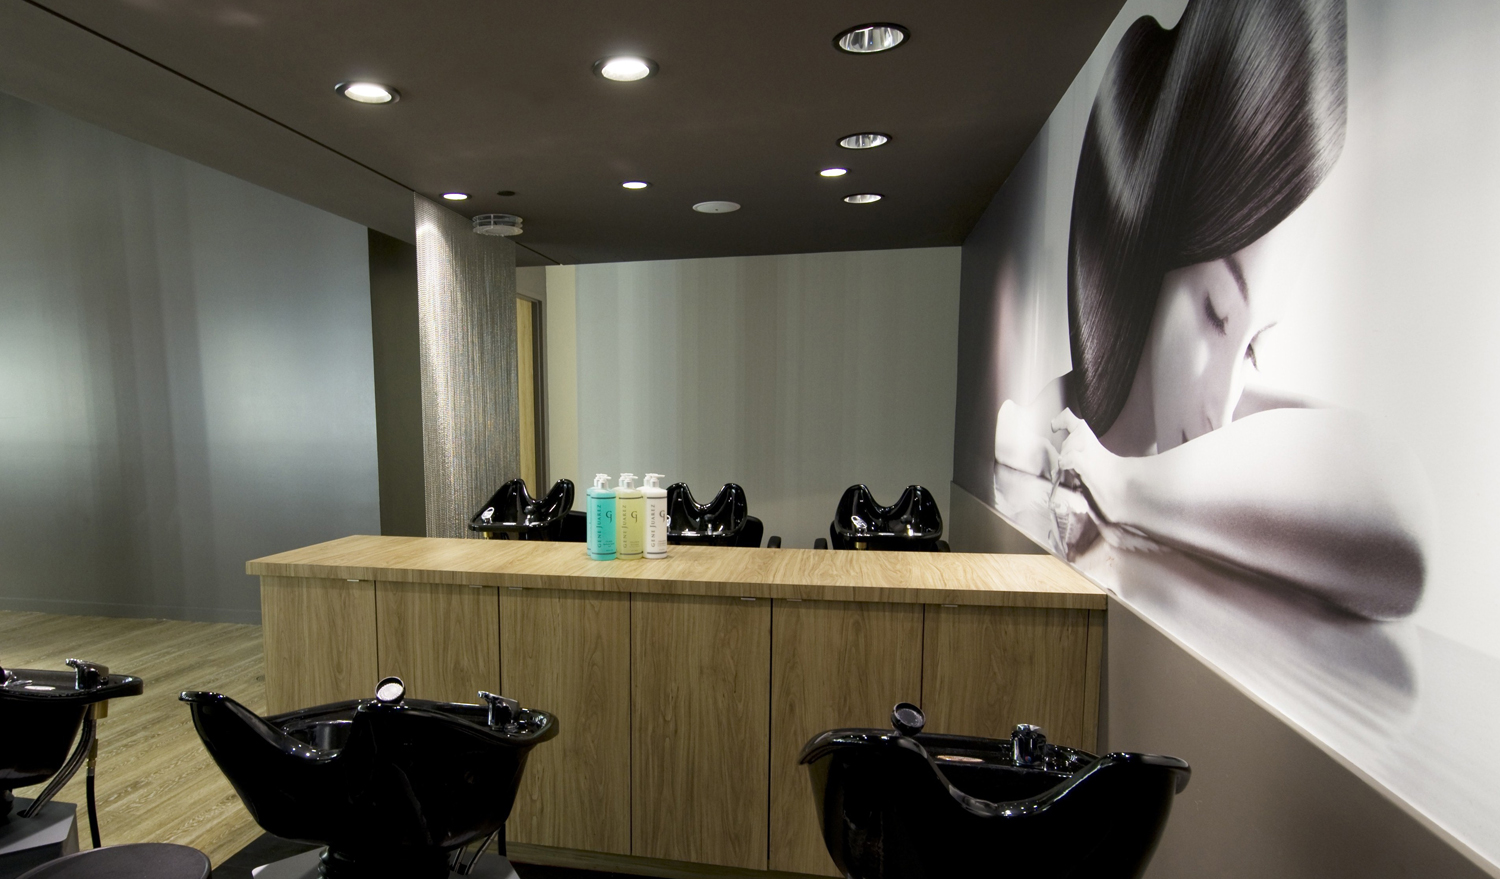 Wash Stations at Gene Juarez Salon & Spa at Kitsap